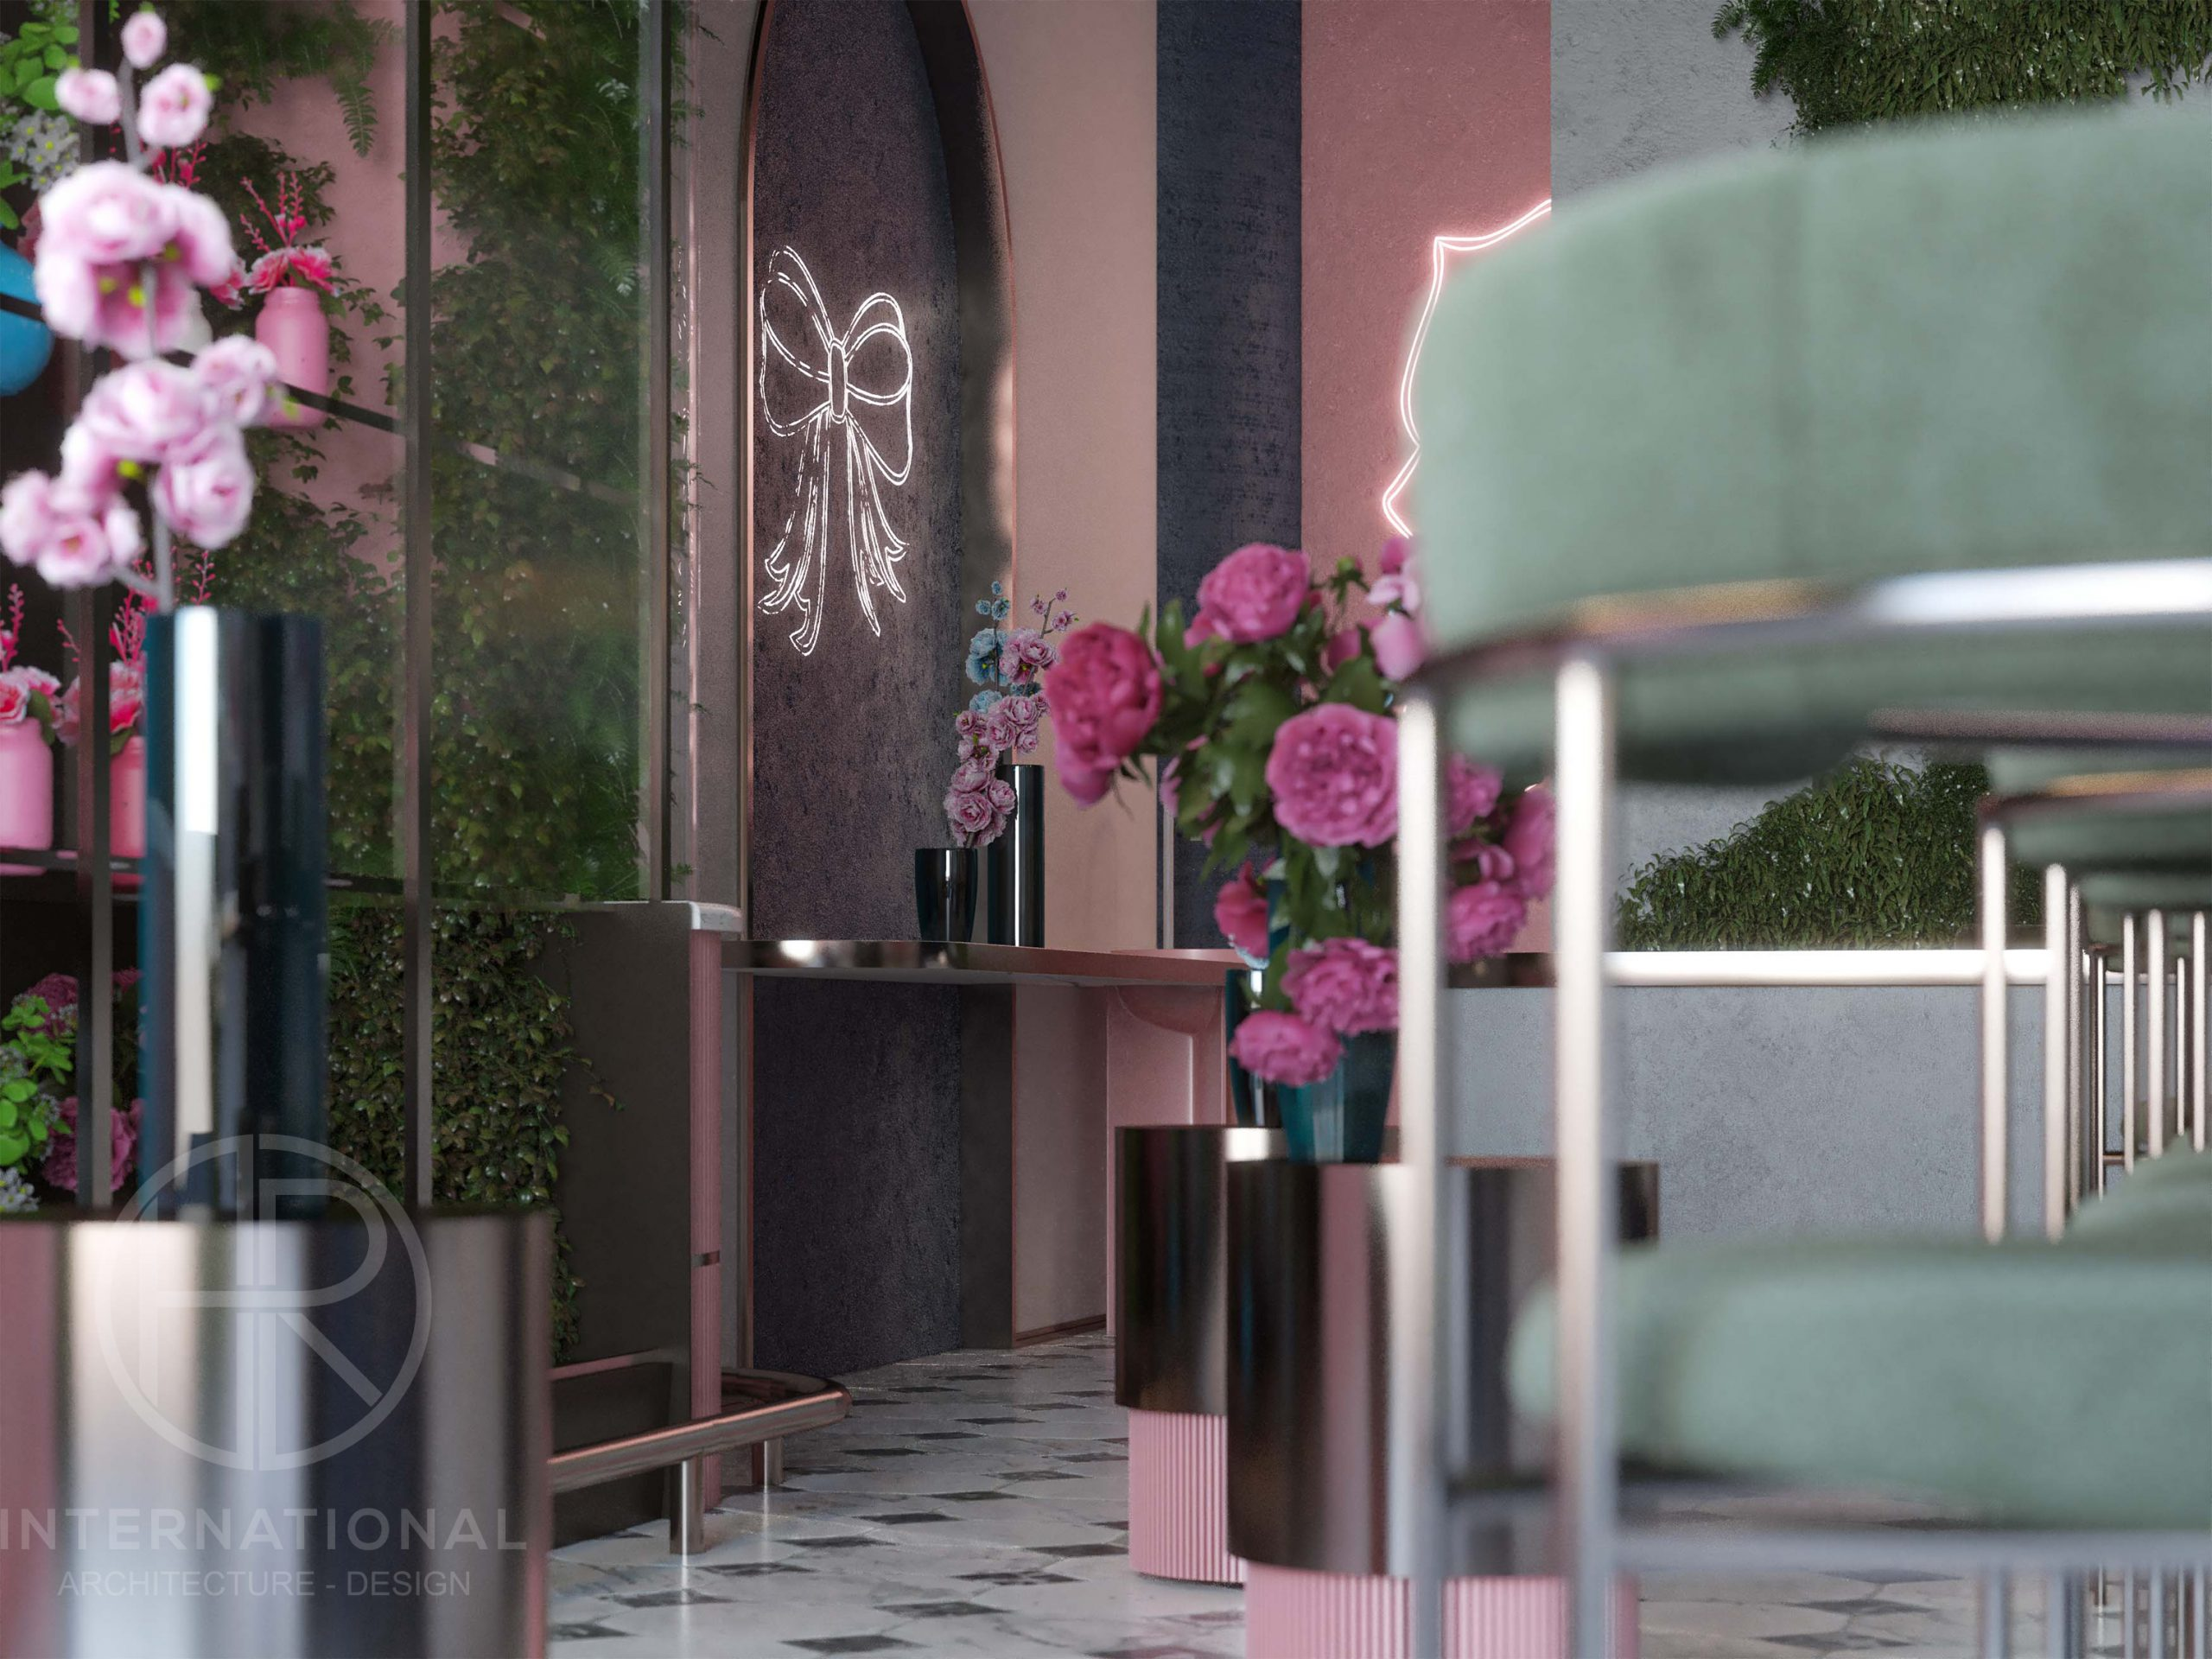 chairs - floret - flowers - green -